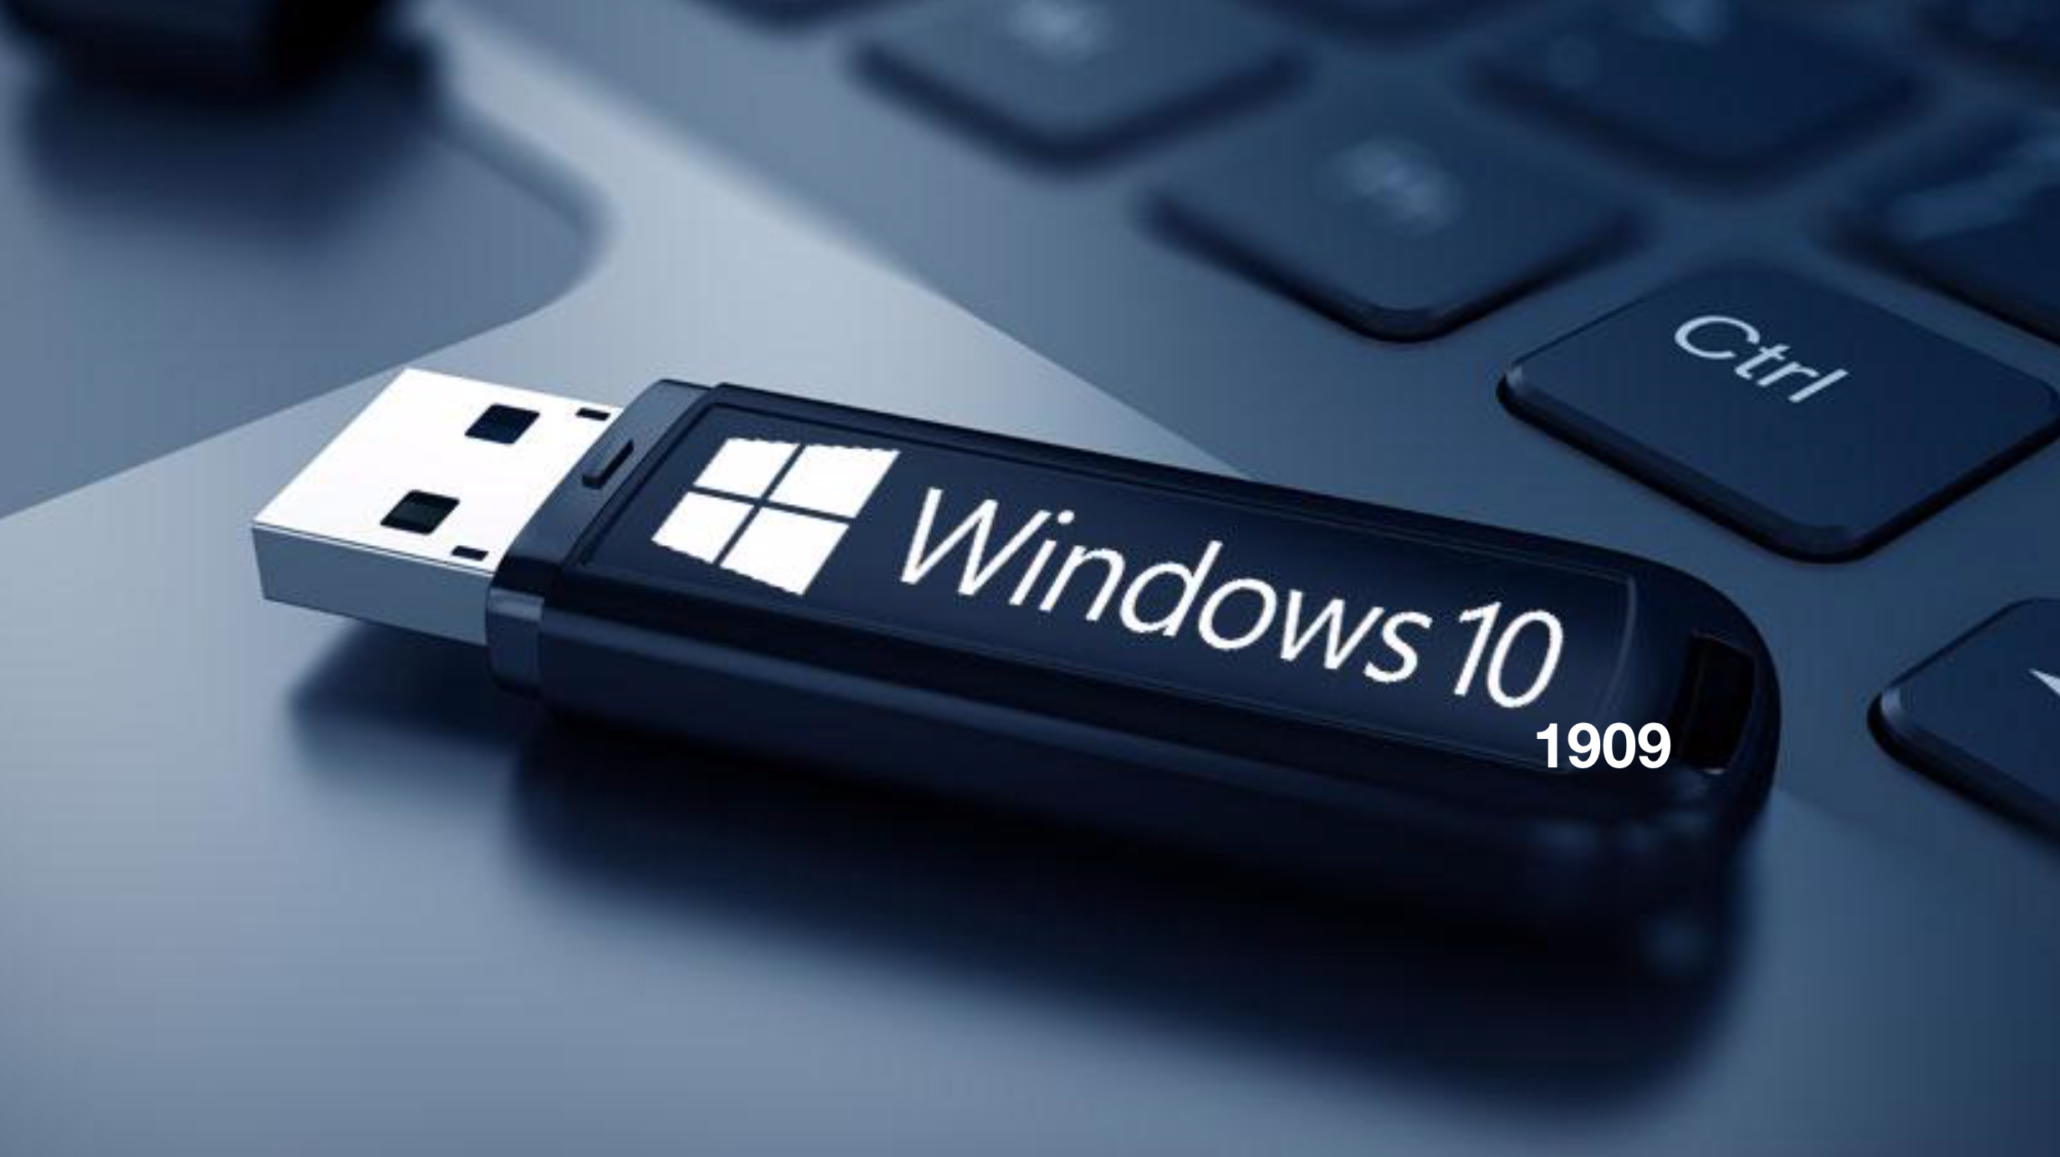 Direct Download Windows 10 1909 ISO Files (32-Bit / 64-Bit) Officially